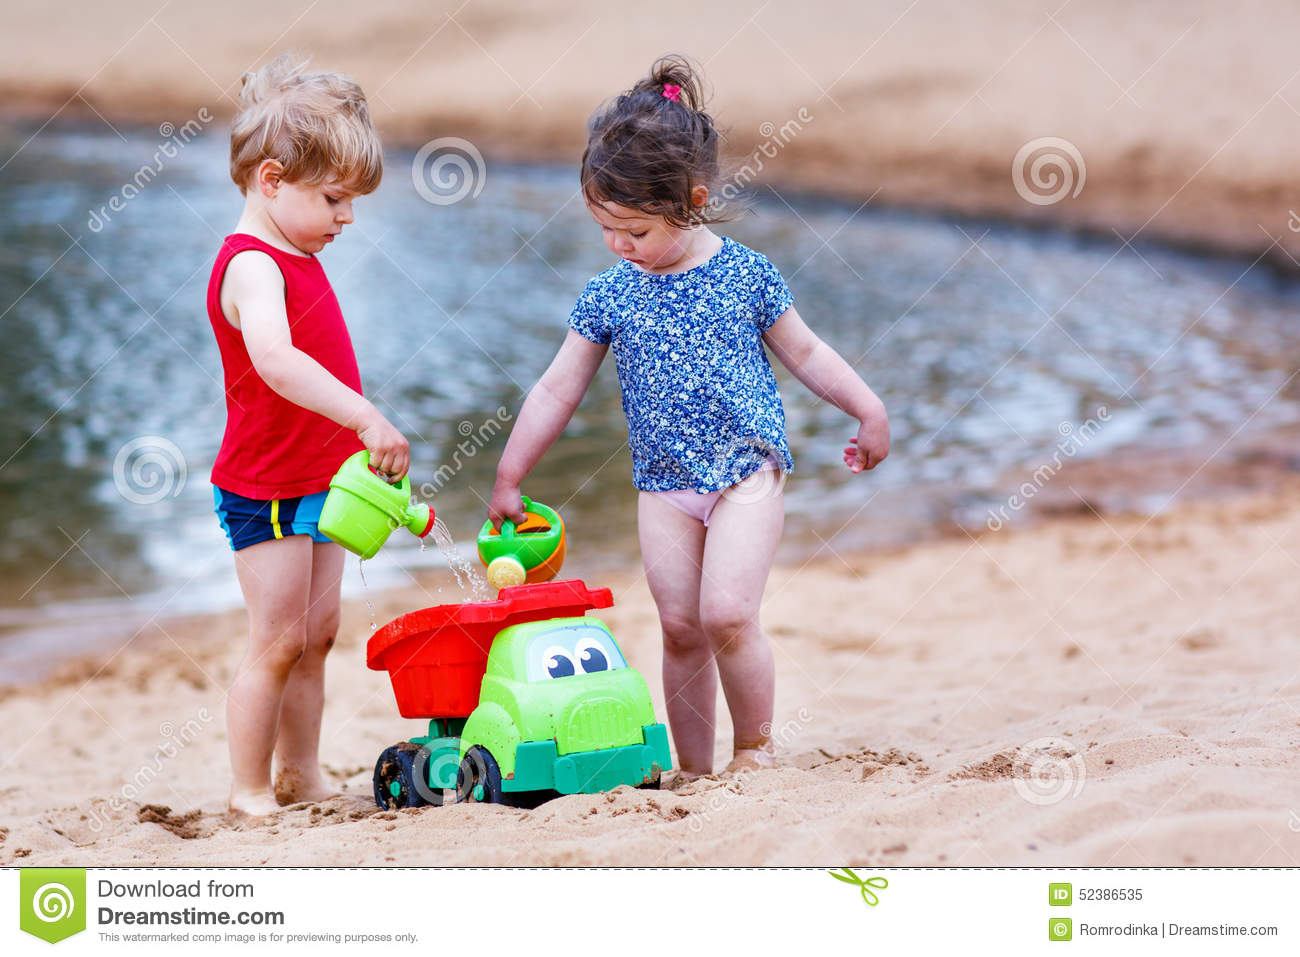 Lake Toys For Boys : Little toddler boy and girl playing together with sand